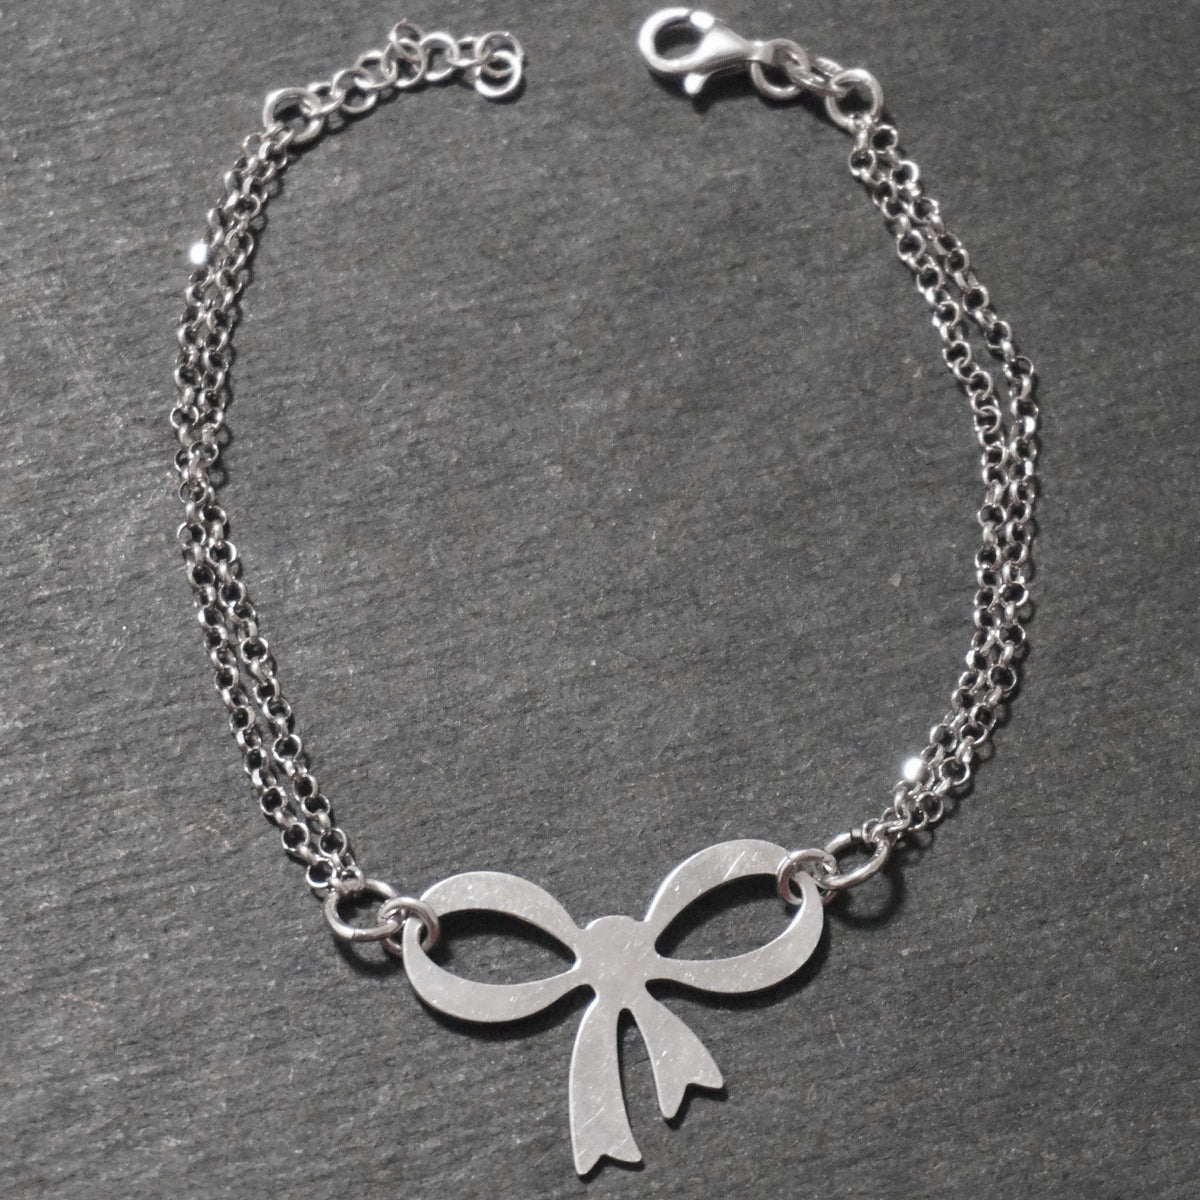 New 14K White Gold on 925 Sterling Silver Christmas Merry Bow Double Chain Bracelet (185.42 mm)